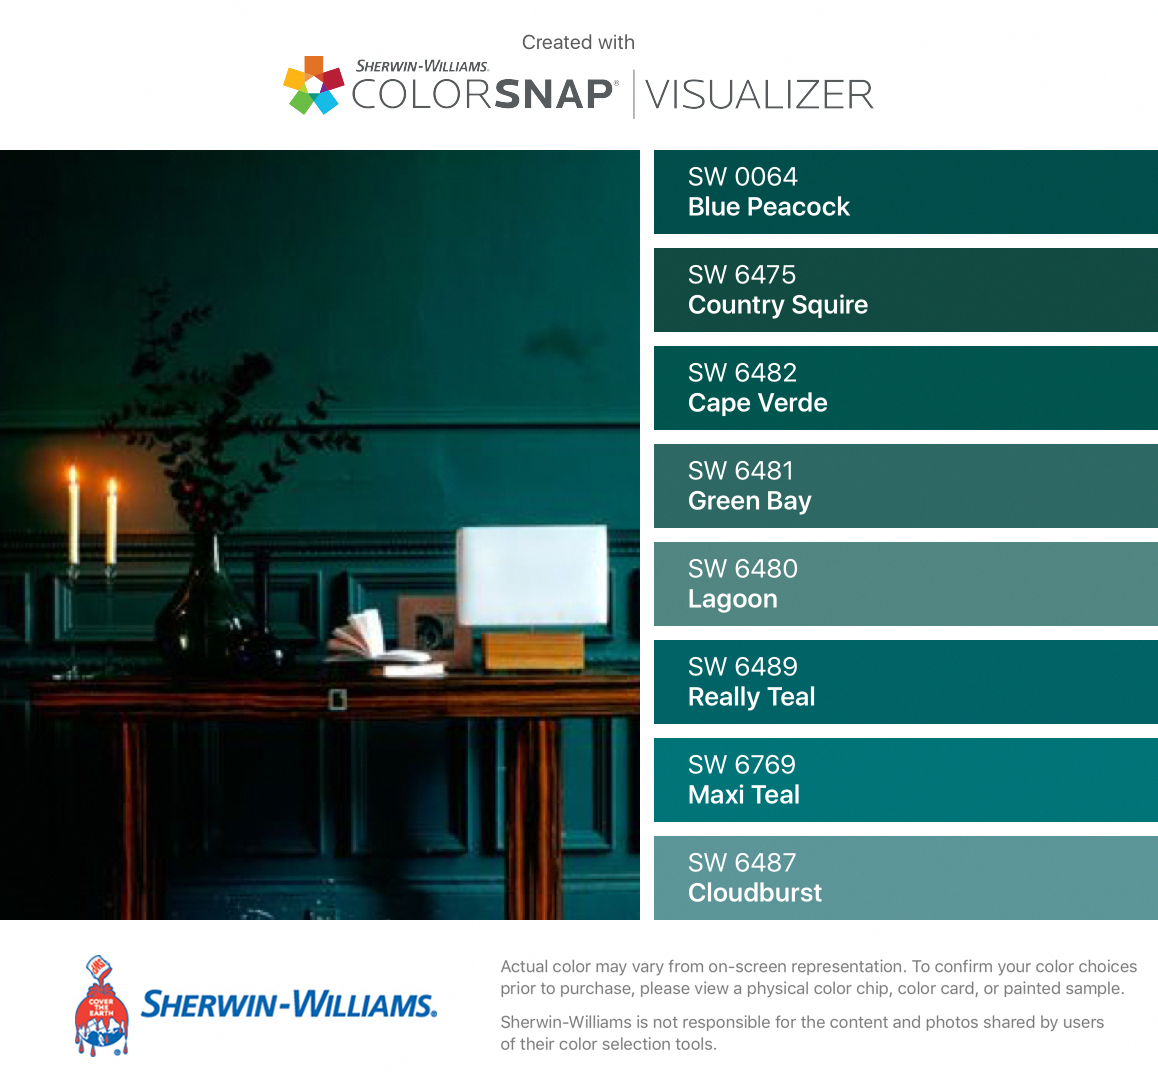 Accent Wall Colors 2019 Commercial: Cheap Home Decorating Websites In 2019